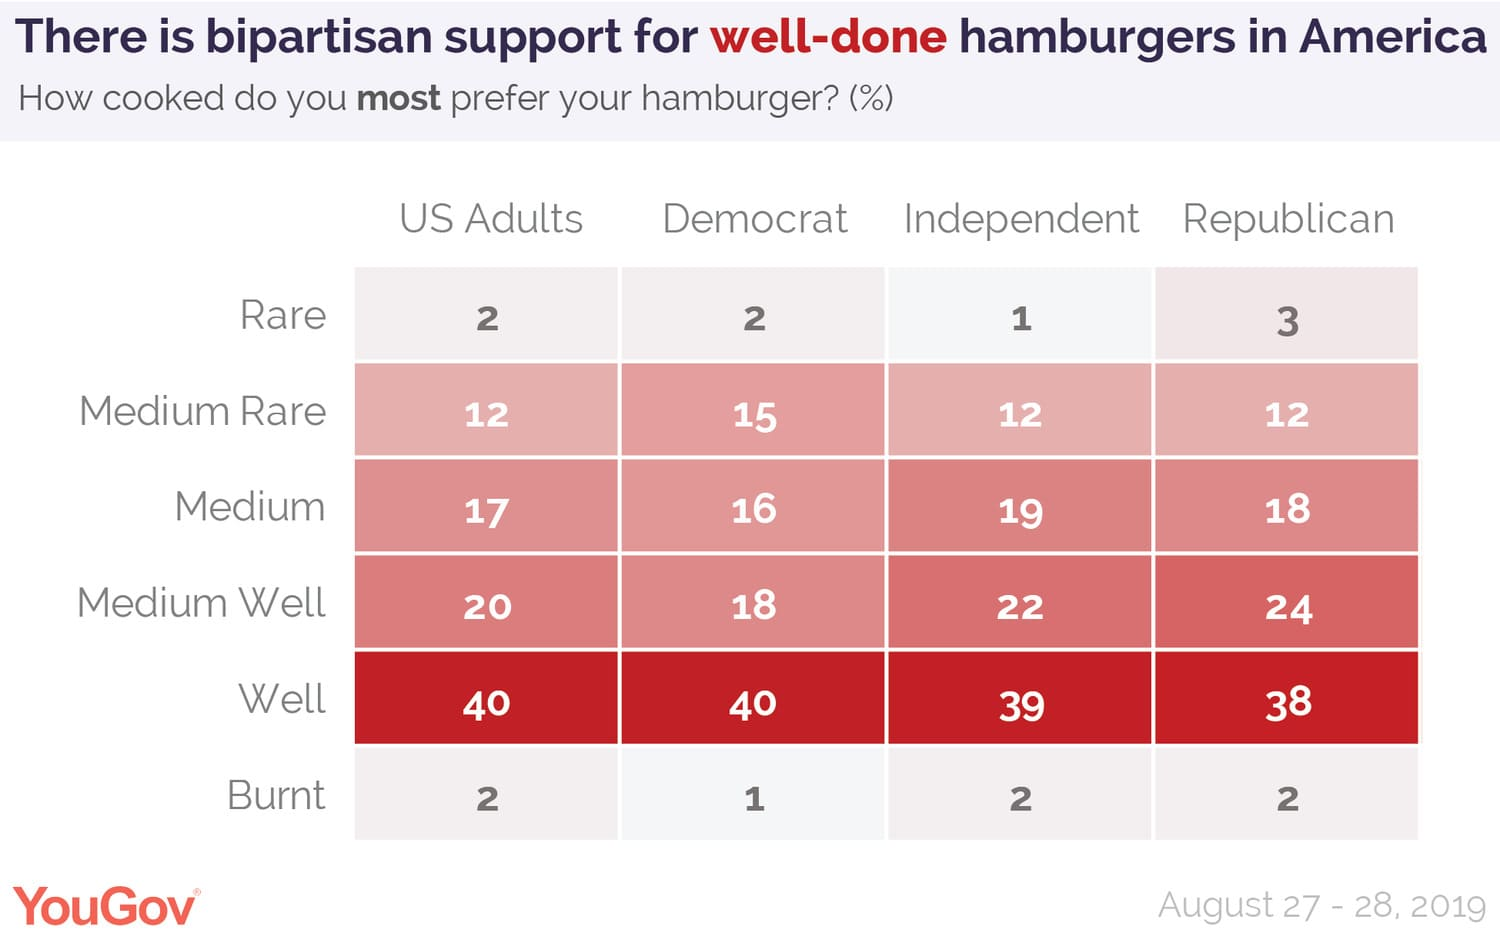 There is bipartisan support for well-done hamburgers in America